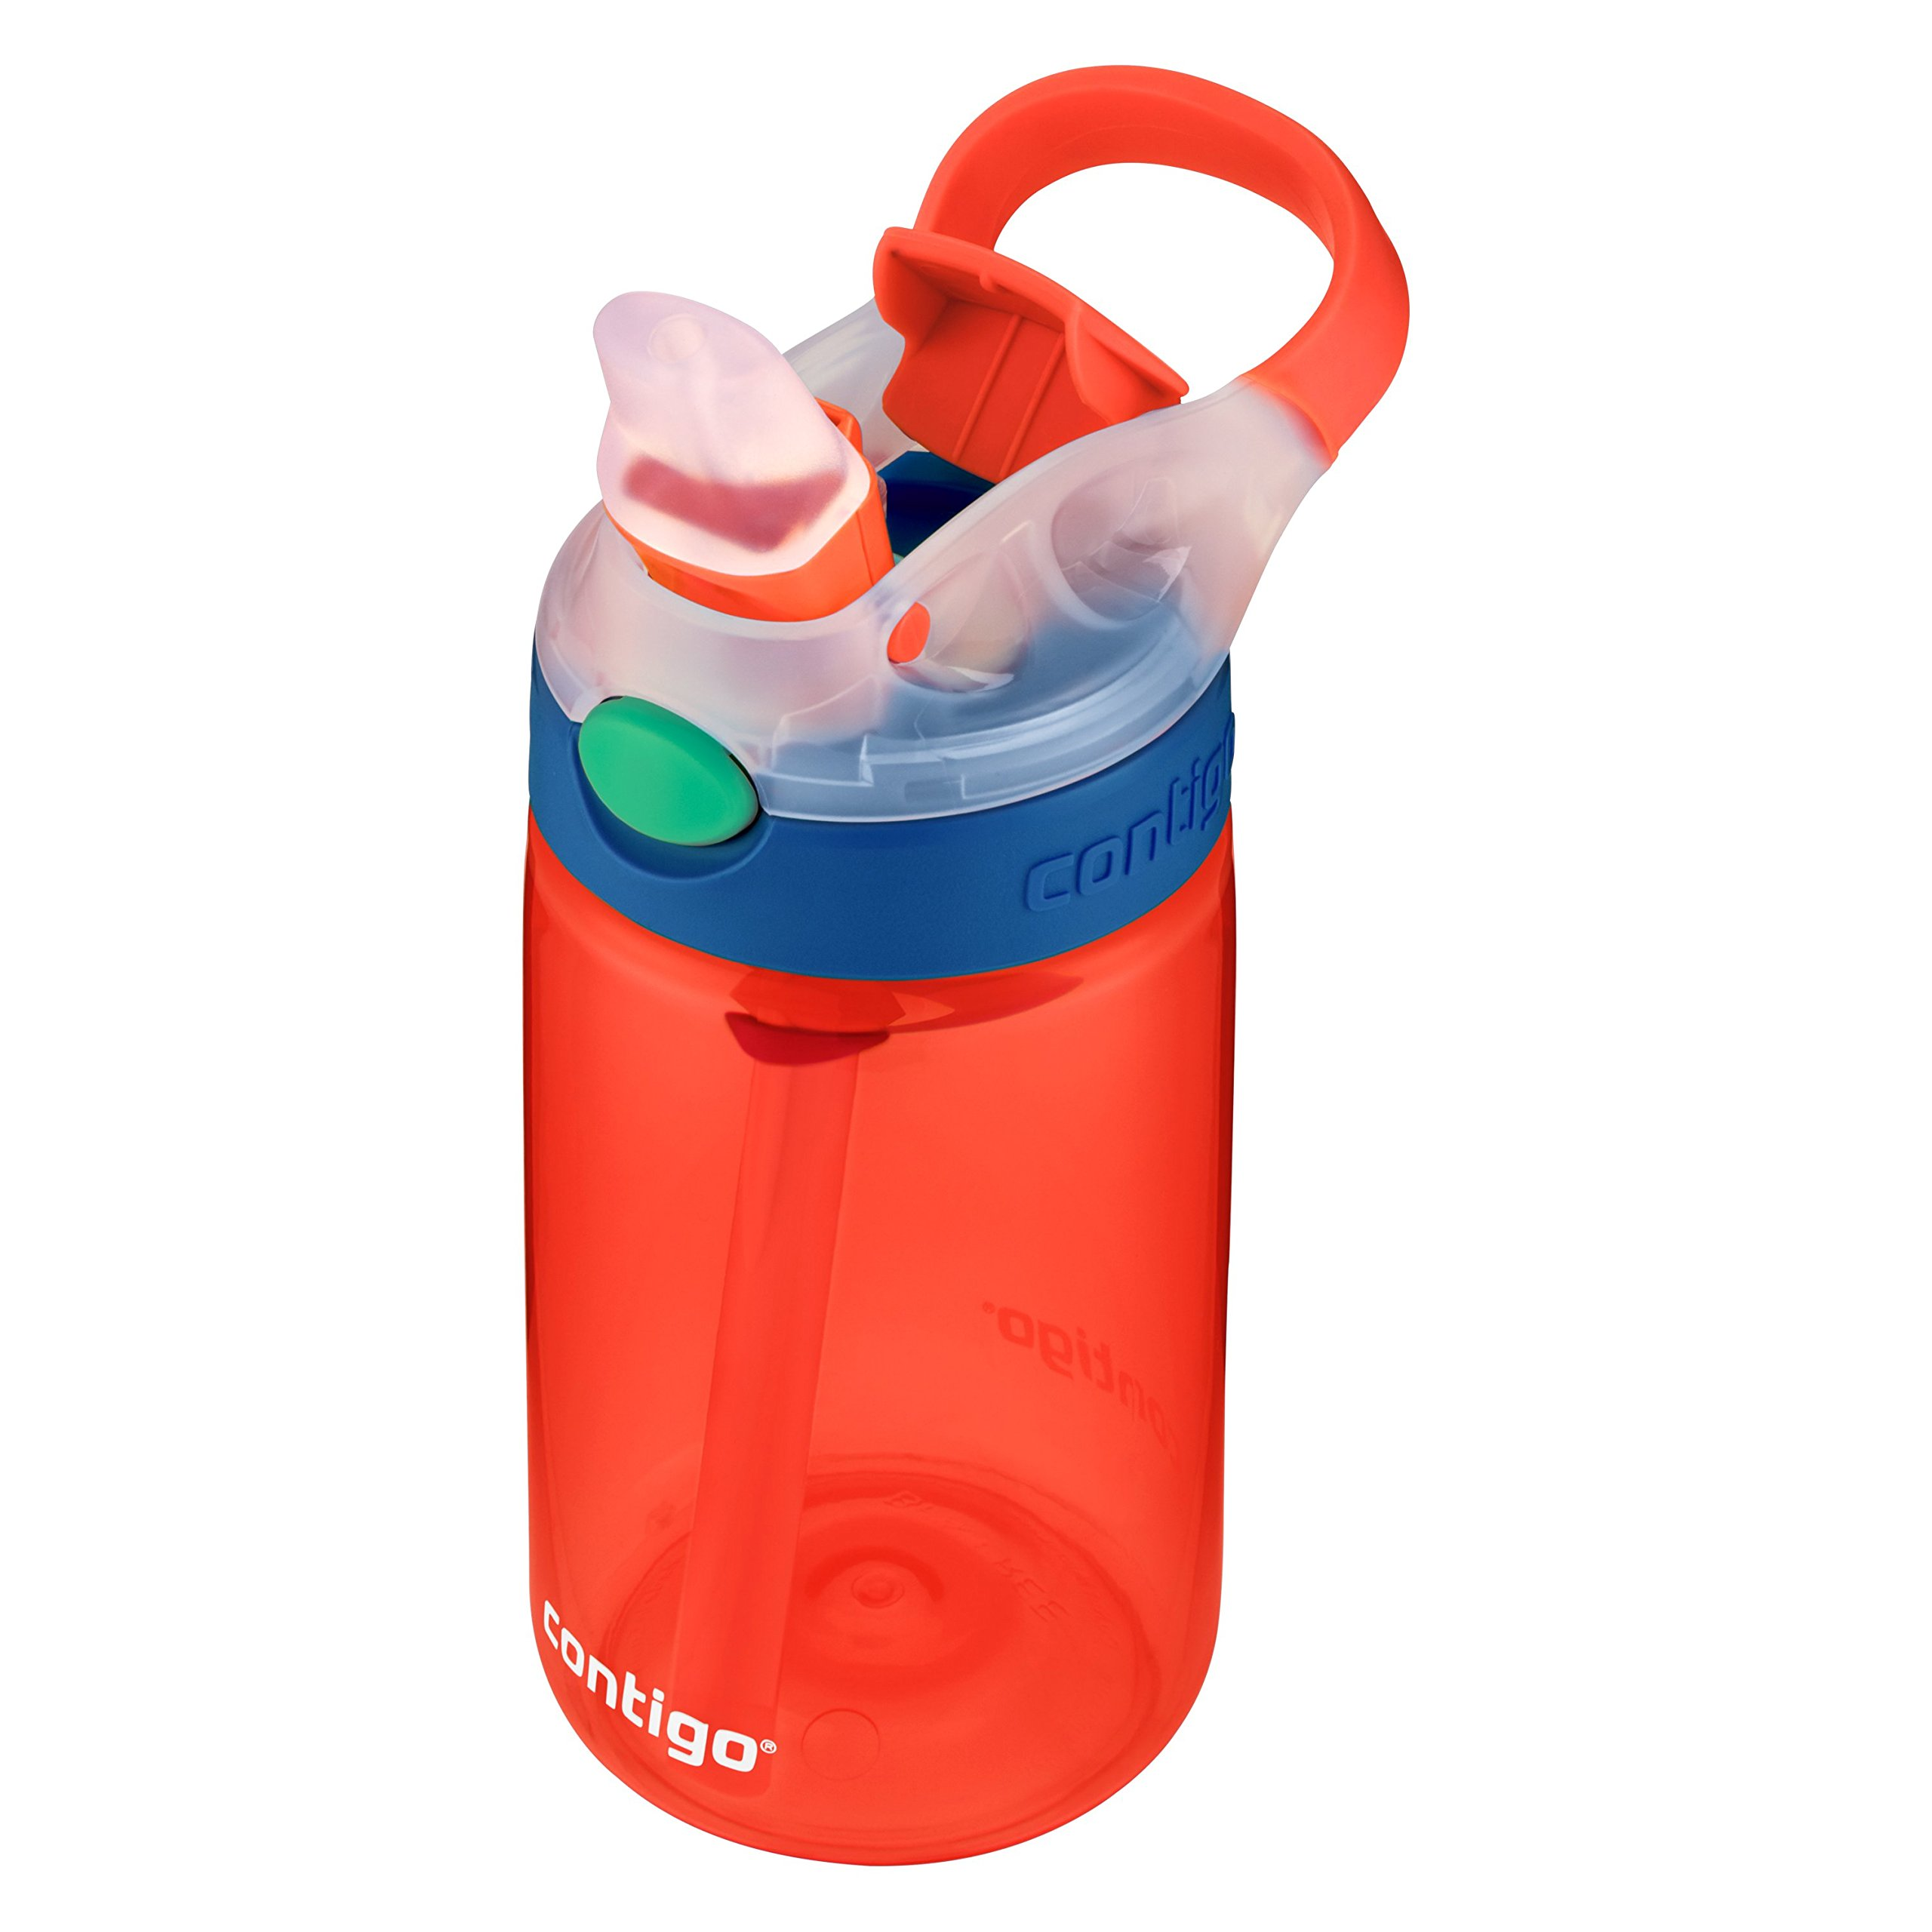 Contigo Kids Gizmo Flip Water Bottles, 14oz, French Blue/Coral, 2-Pack by Contigo (Image #4)